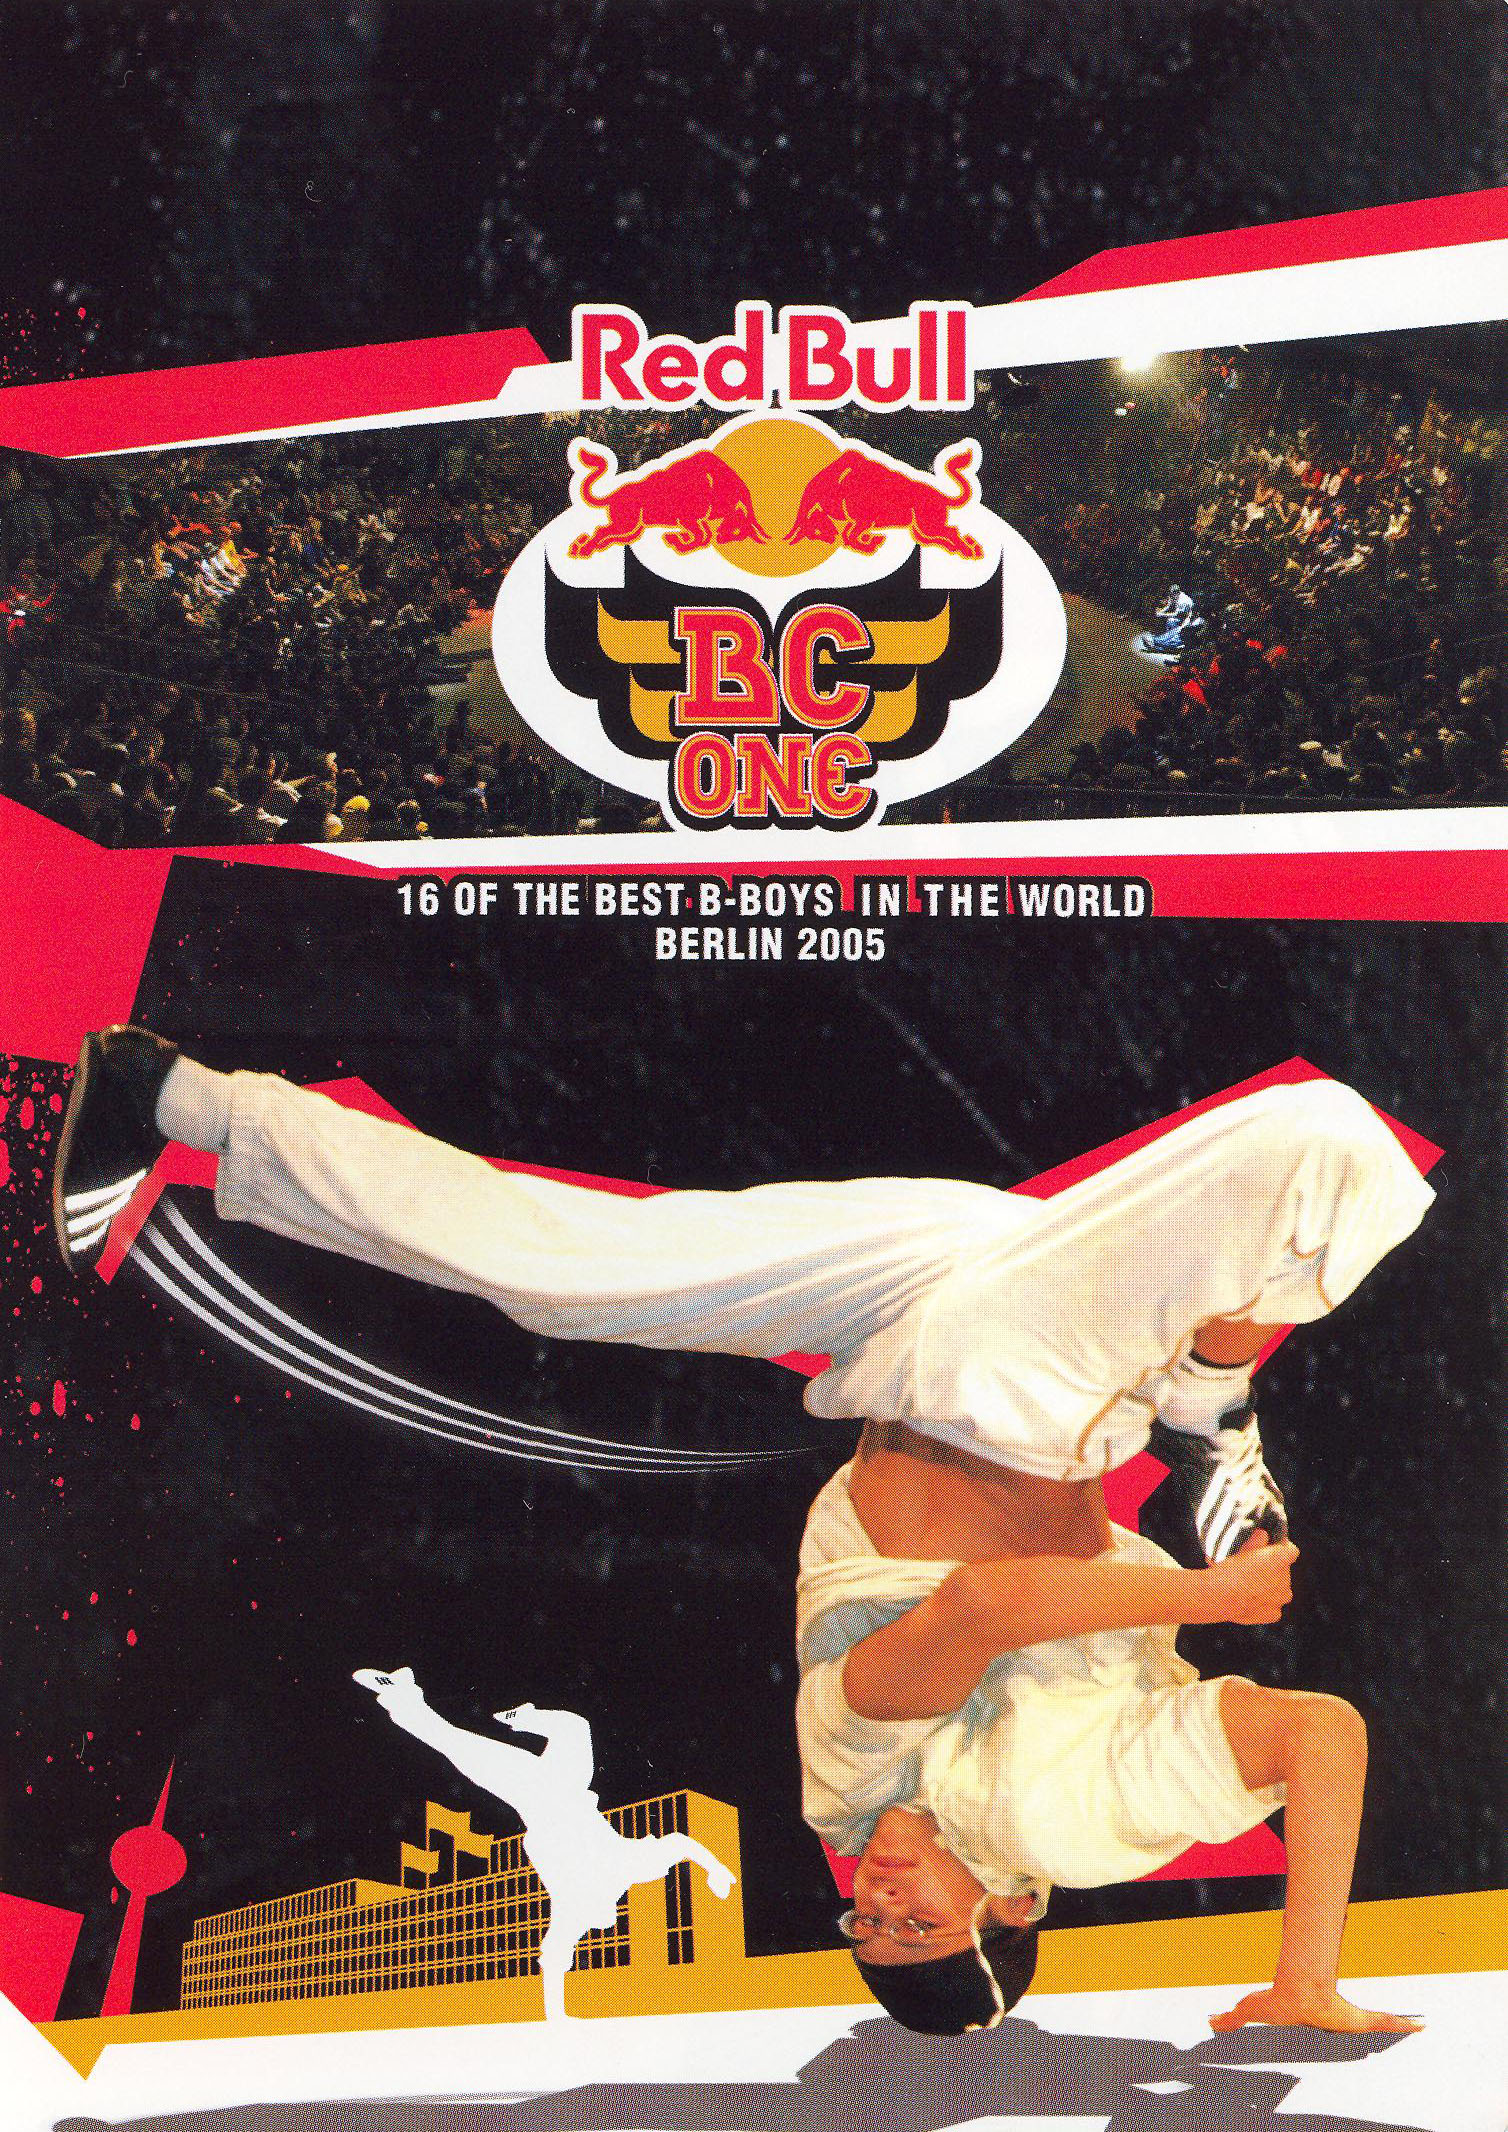 Red Bull BC One Berlin 2005